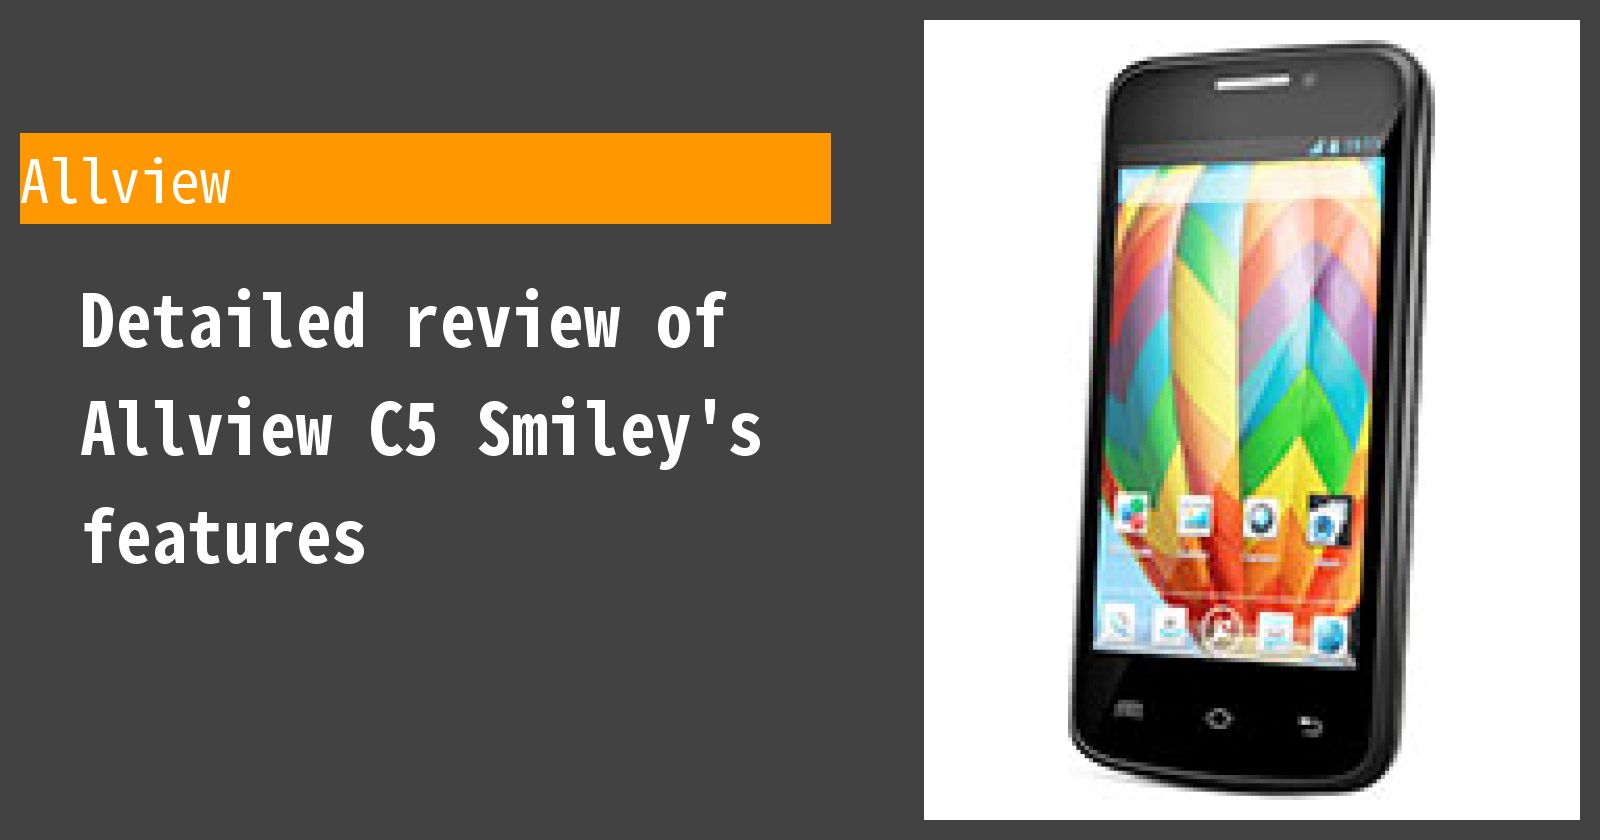 Detailed review of Allview C5 Smiley's features